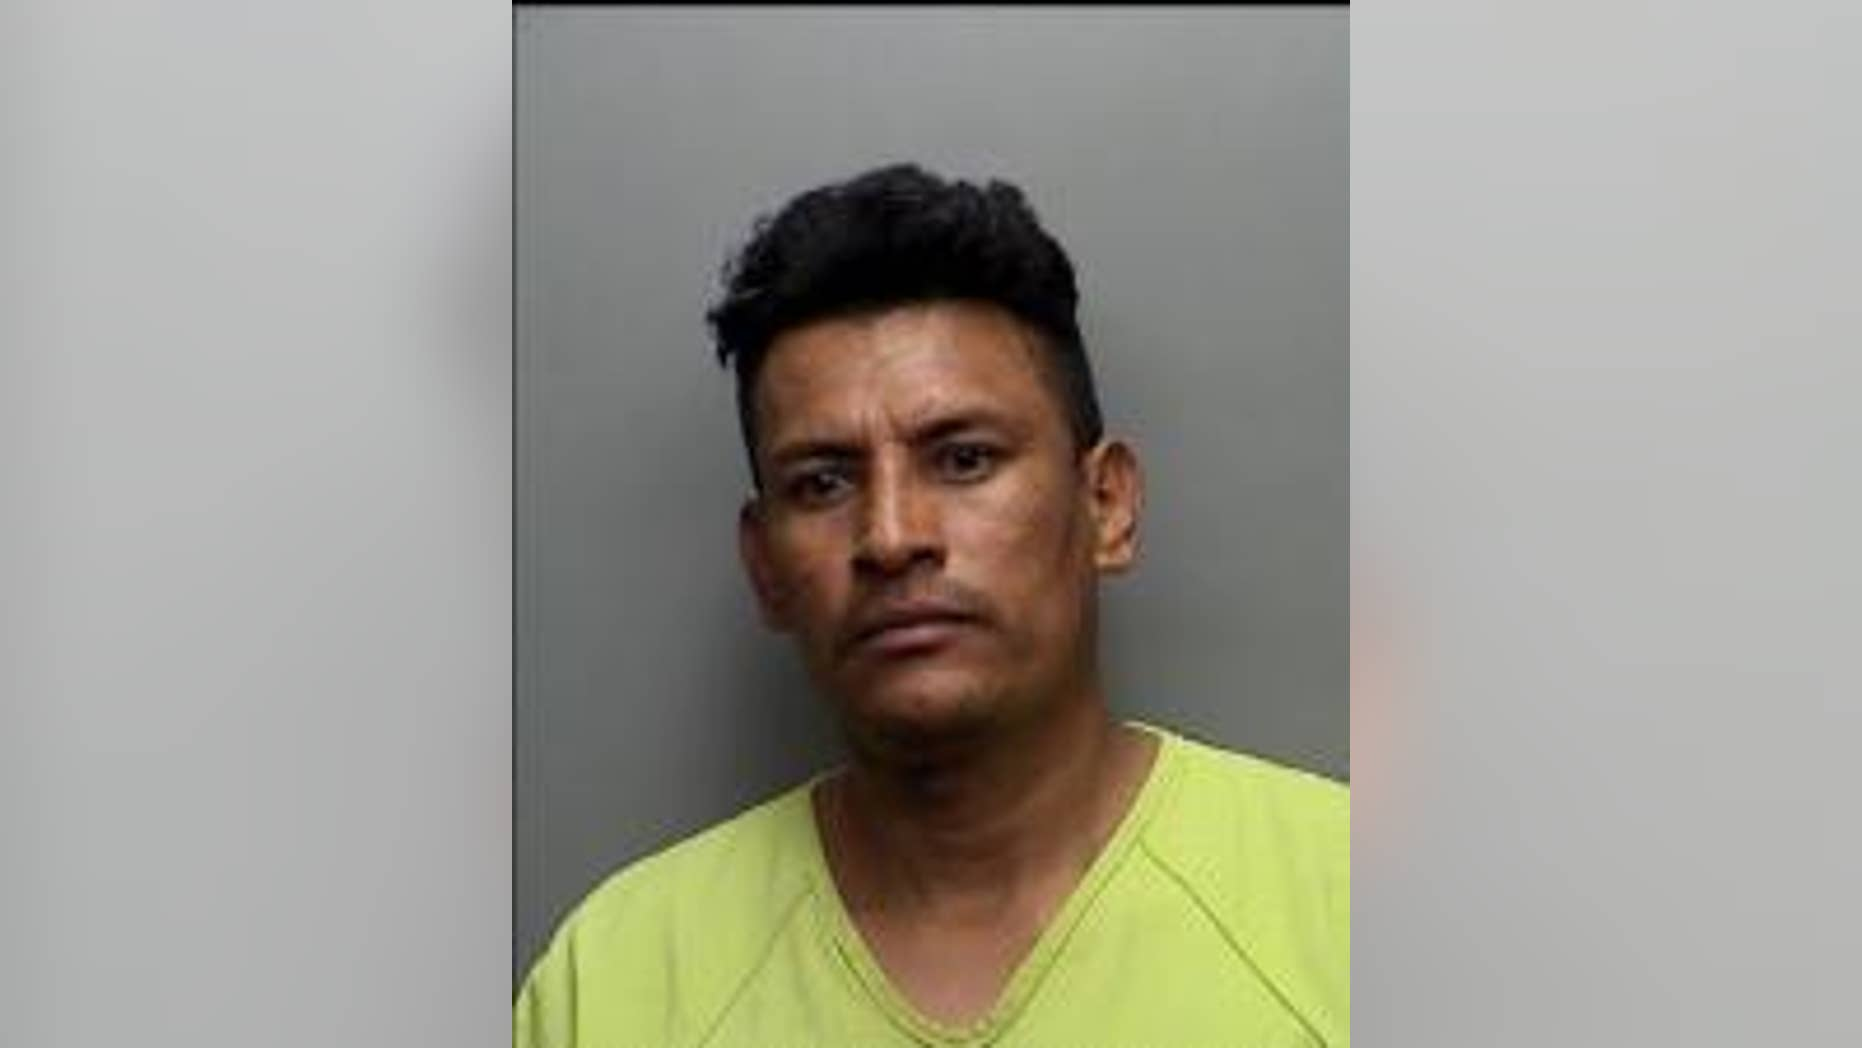 Angel Ramos, an illegal immigrant and MS-13 gang member, is accused of stabbing a woman with a screwdriver and running over her leg.